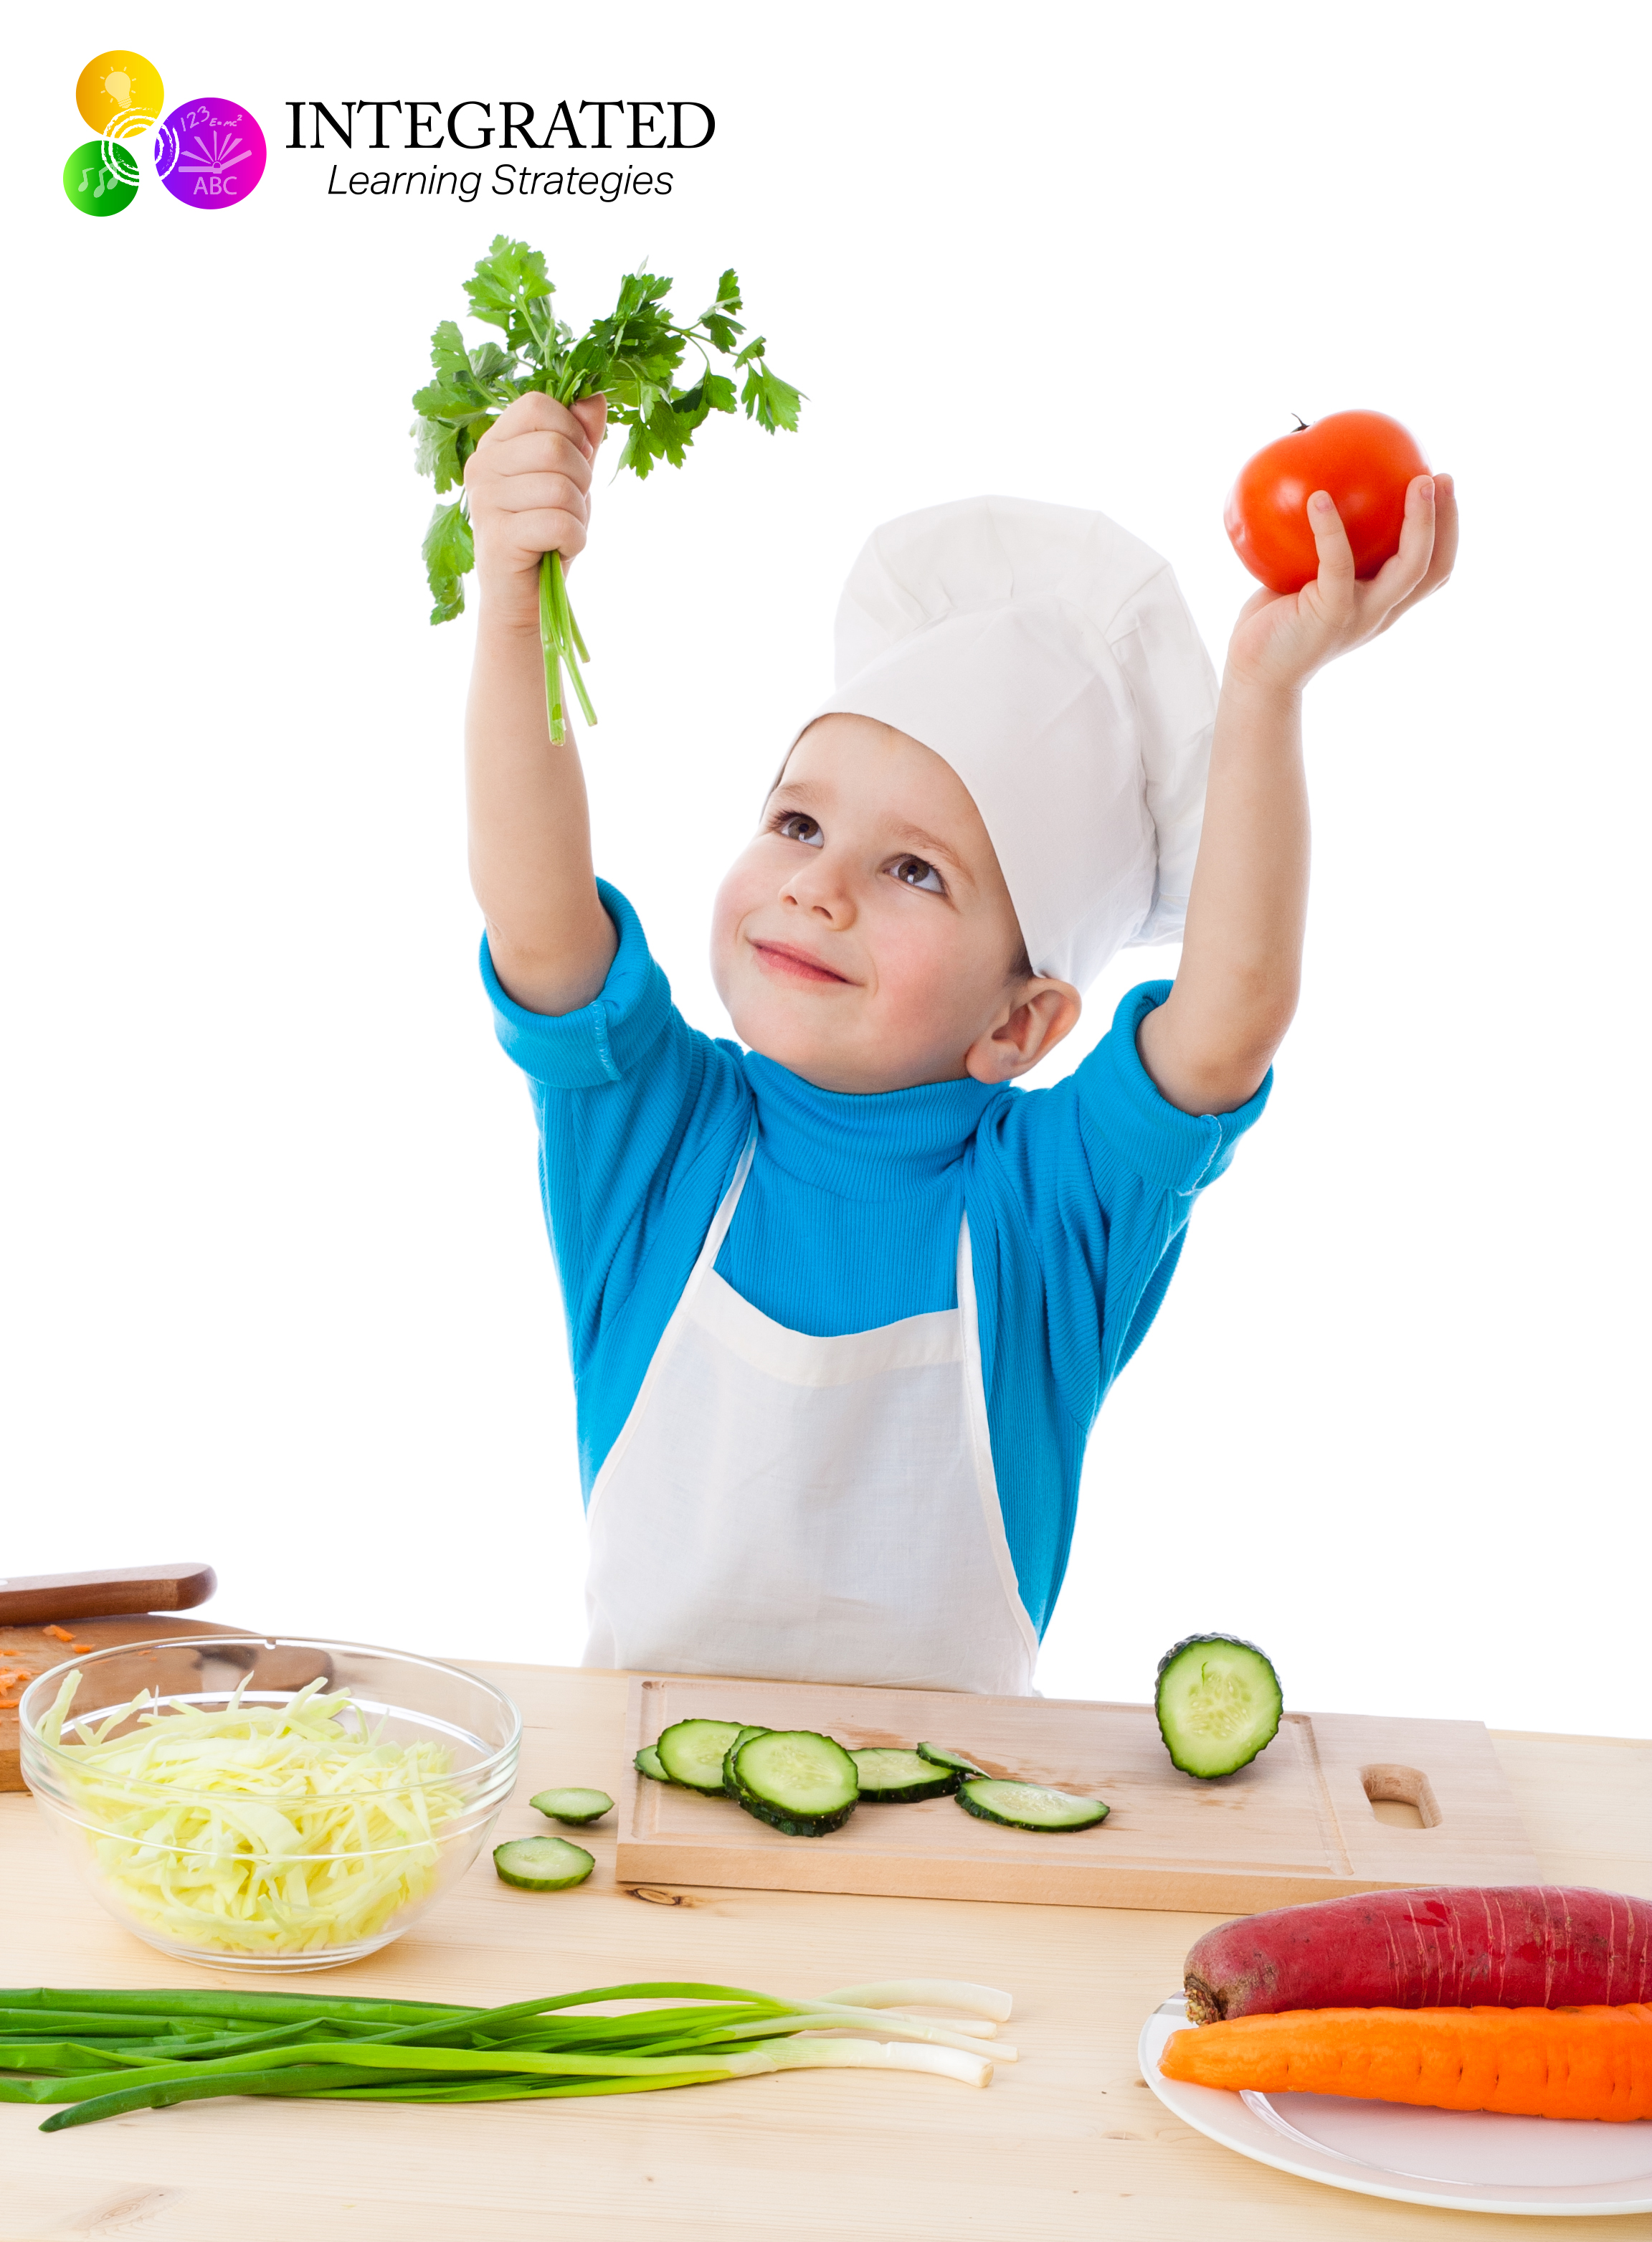 Vegetarianism is a popular choice for many individuals and families. But parents may wonder if kids can safely follow a vegetarian diet and still get all necessary nutrients. Most dietary and medical experts agree that a well-planned vegetarian diet can actually be a very healthy way to eat.